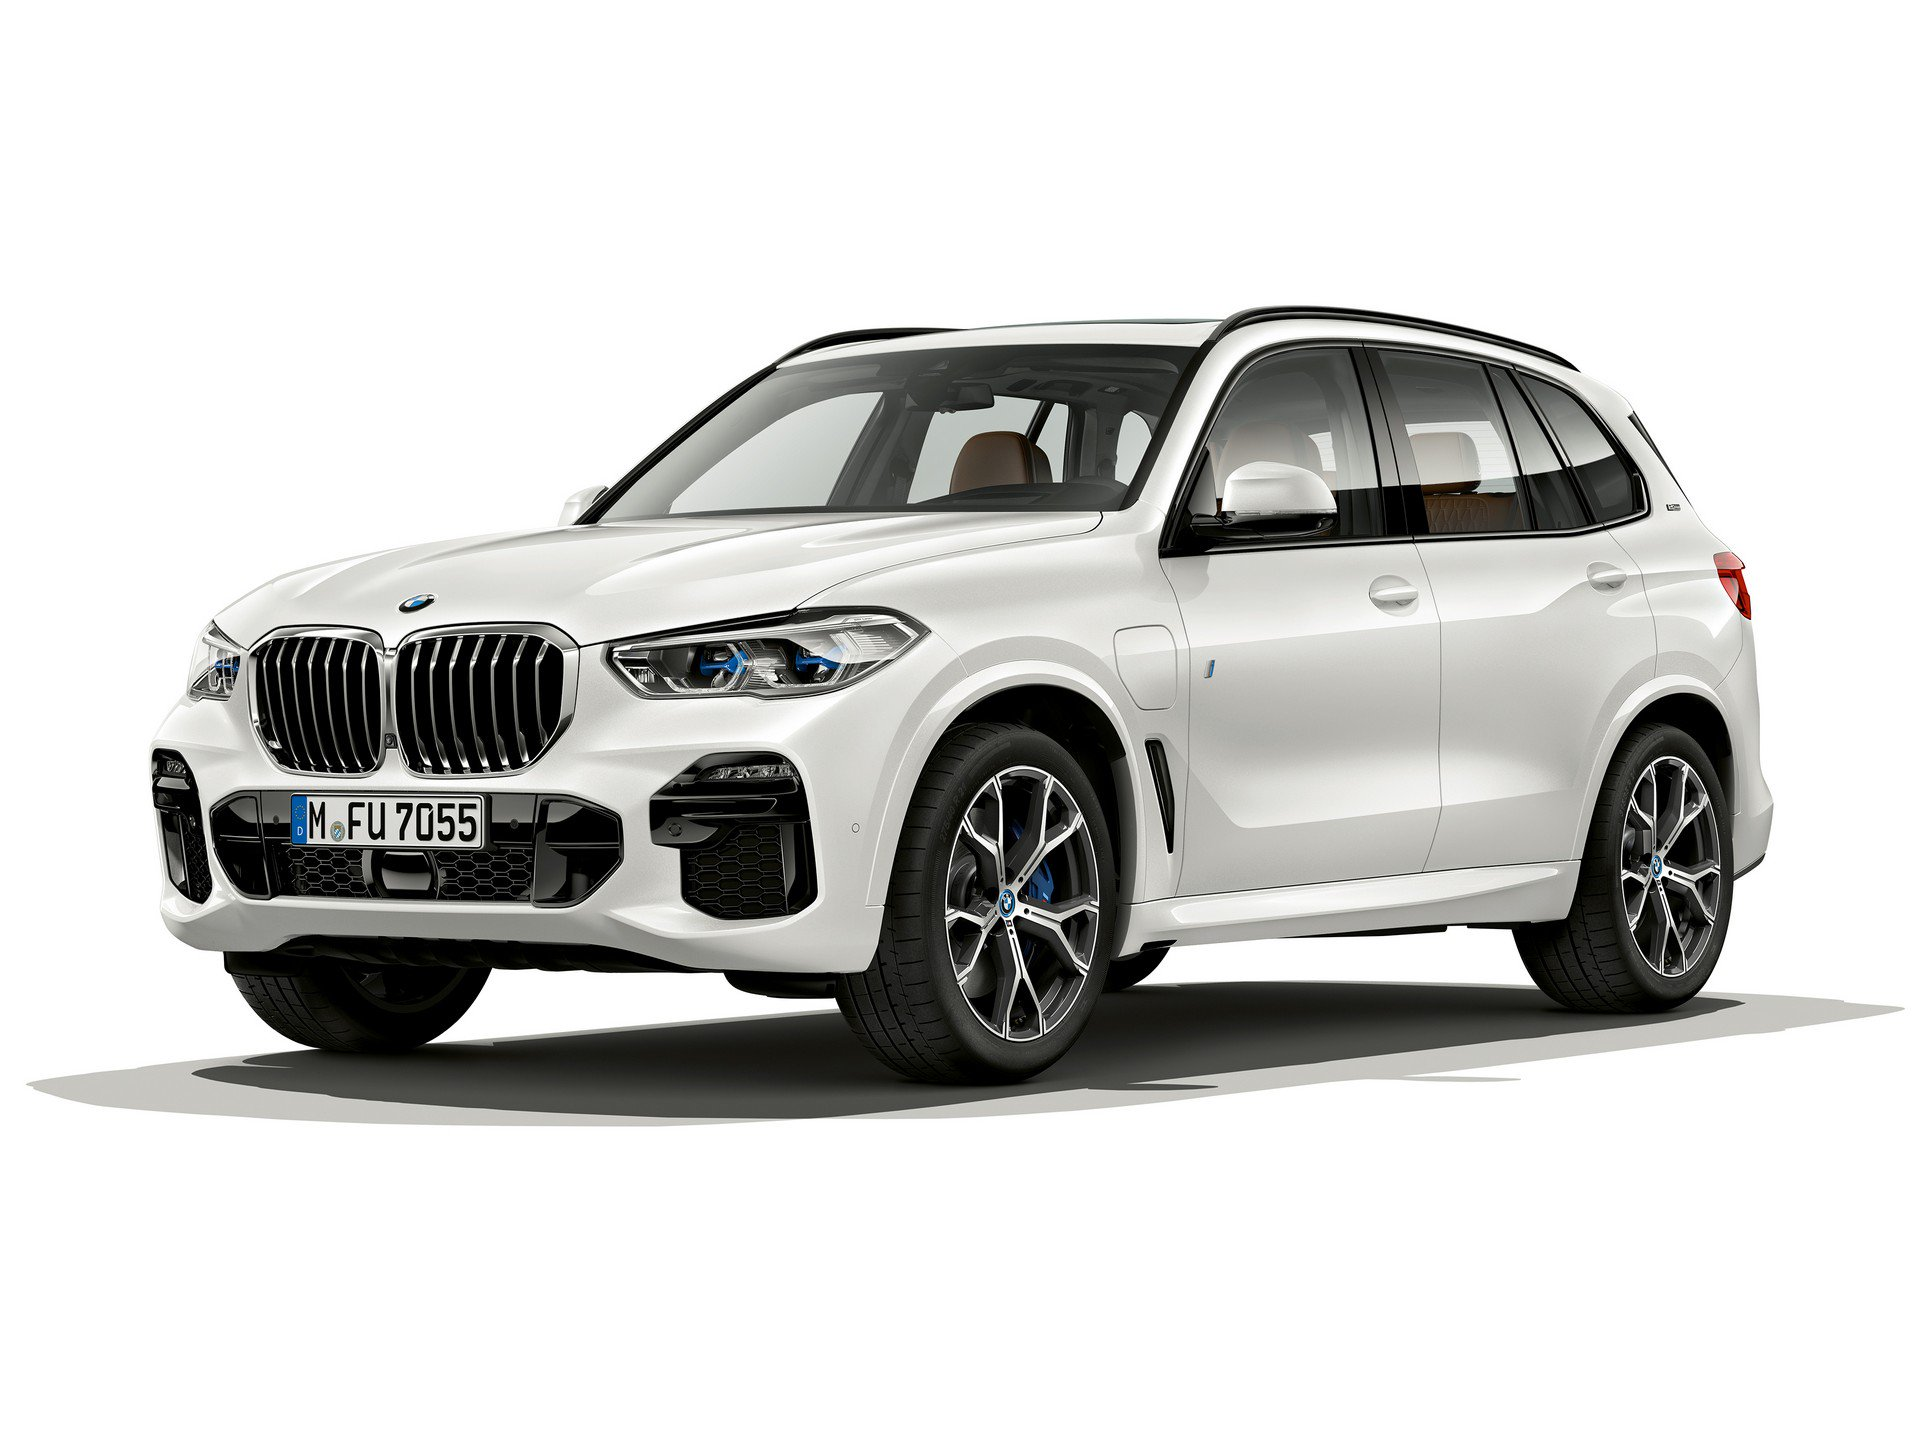 84f4f3b8-bmw-x5-xdrive45e-iperformance-1.jpg